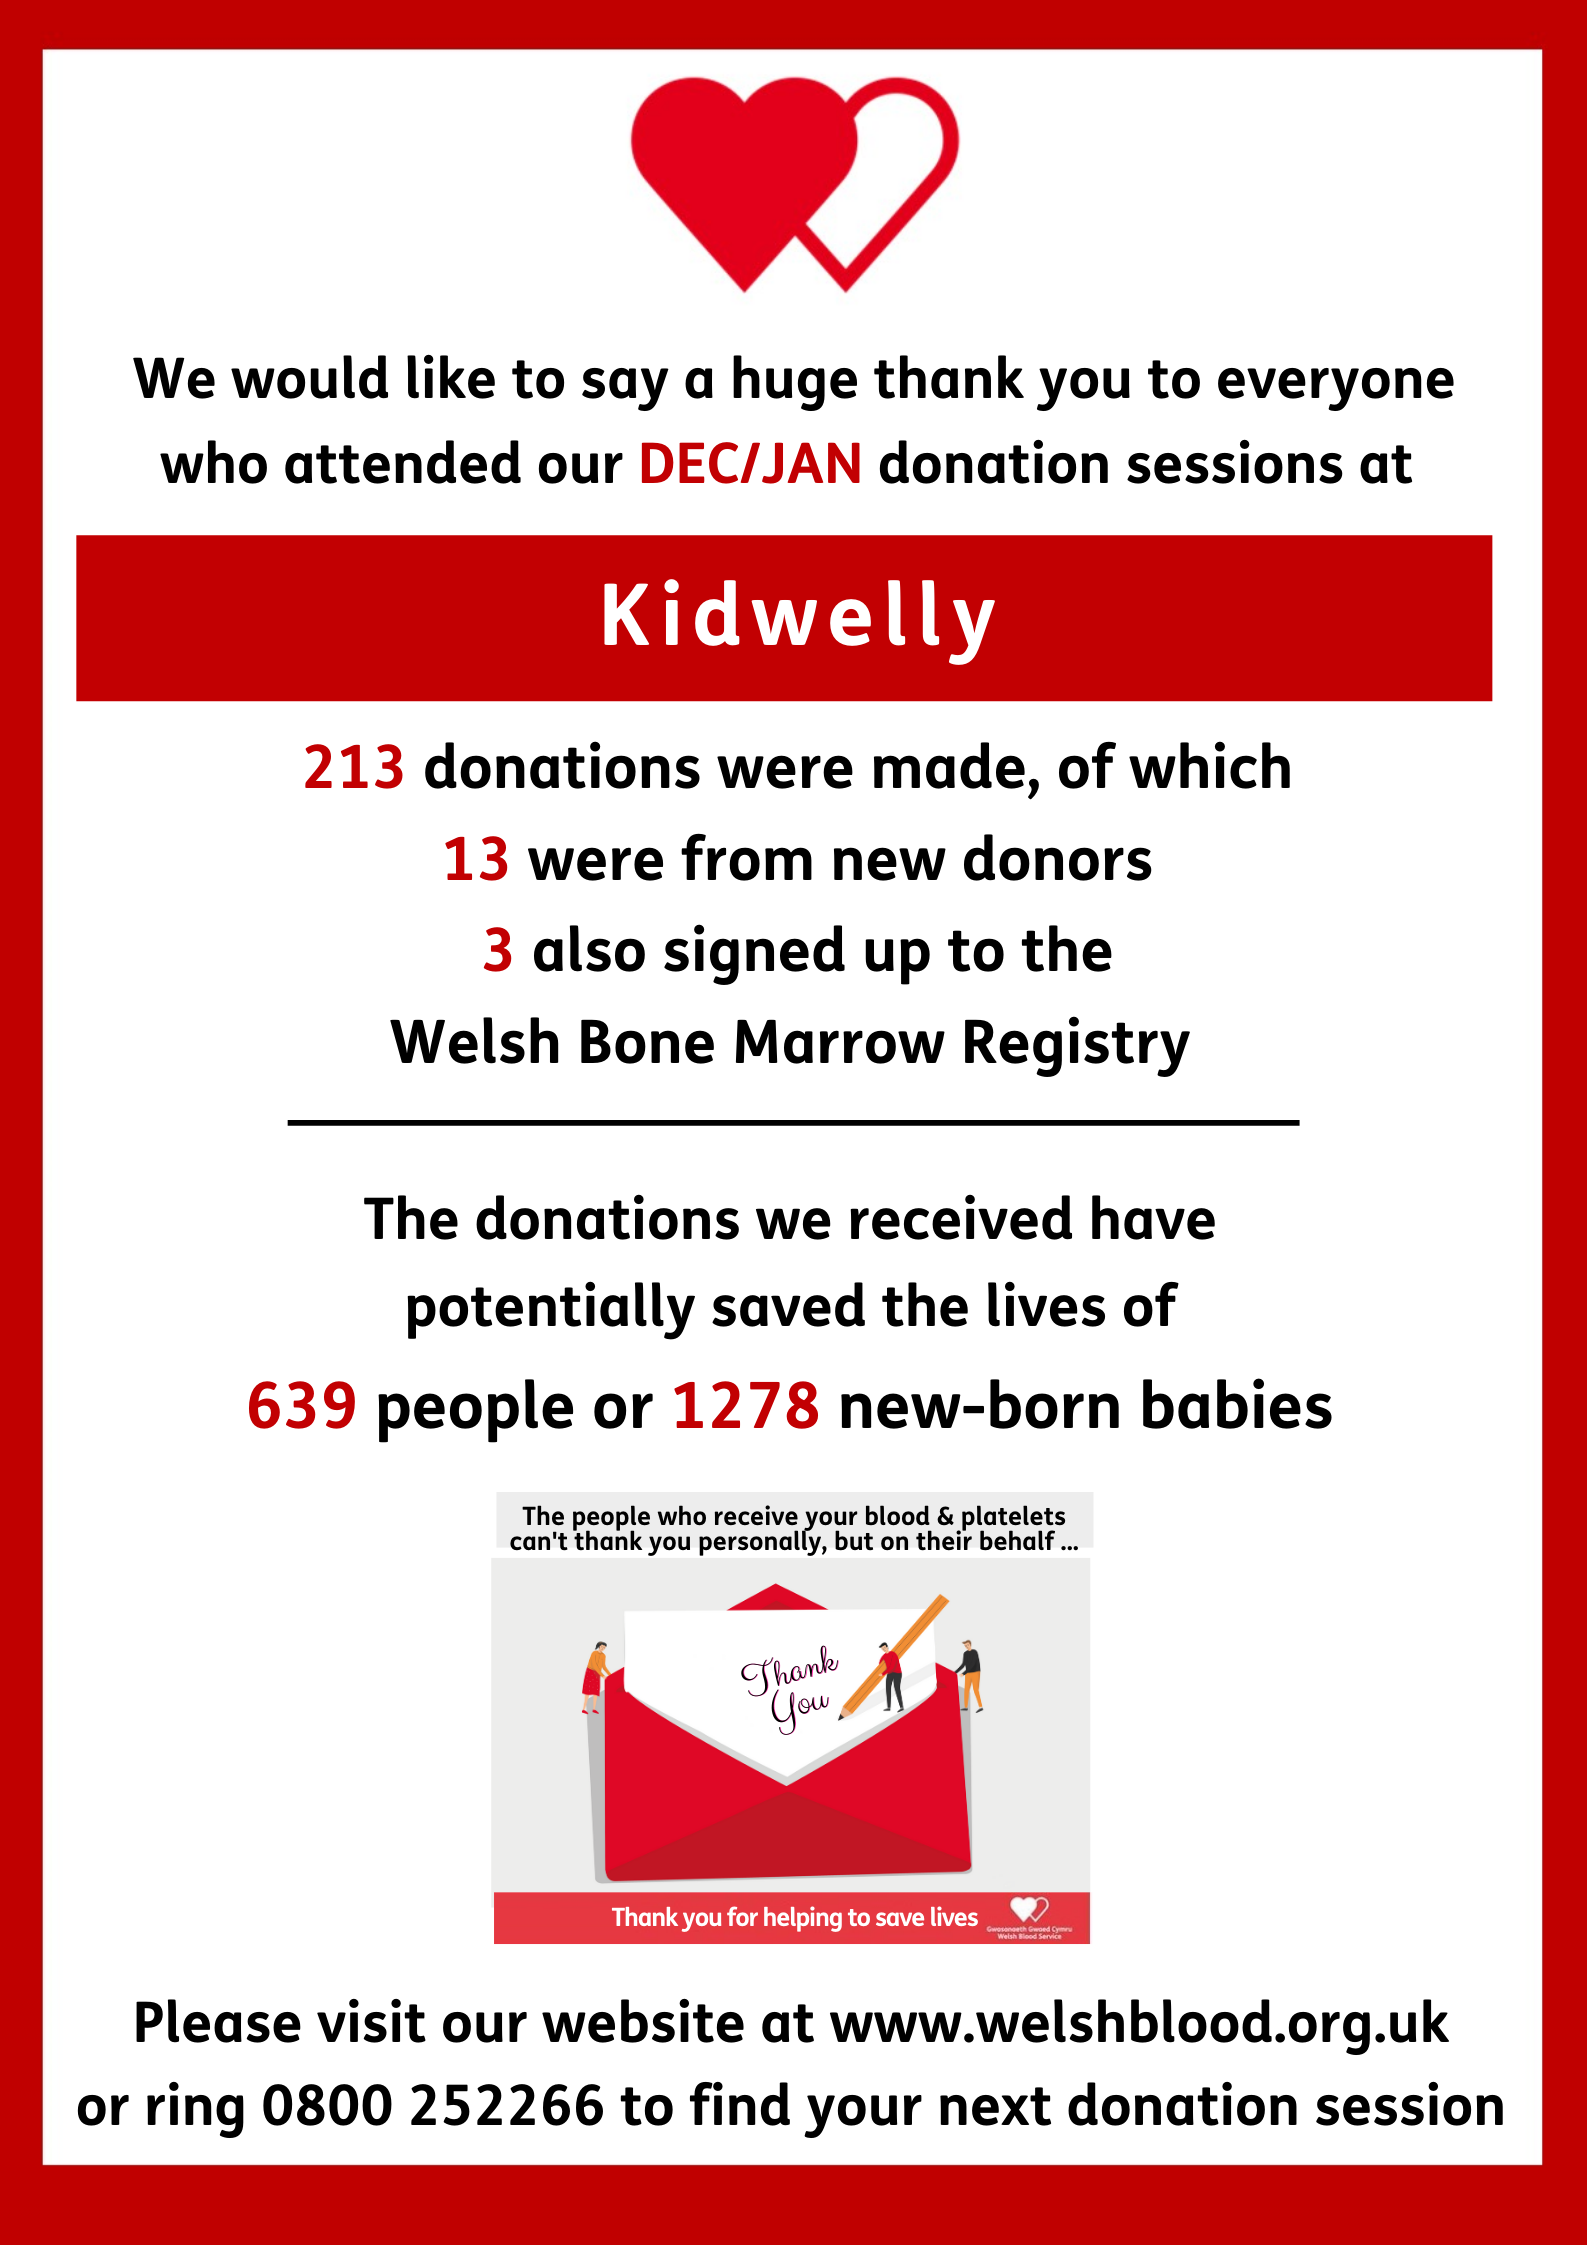 Welsh Blood Service thanks Jan 2021